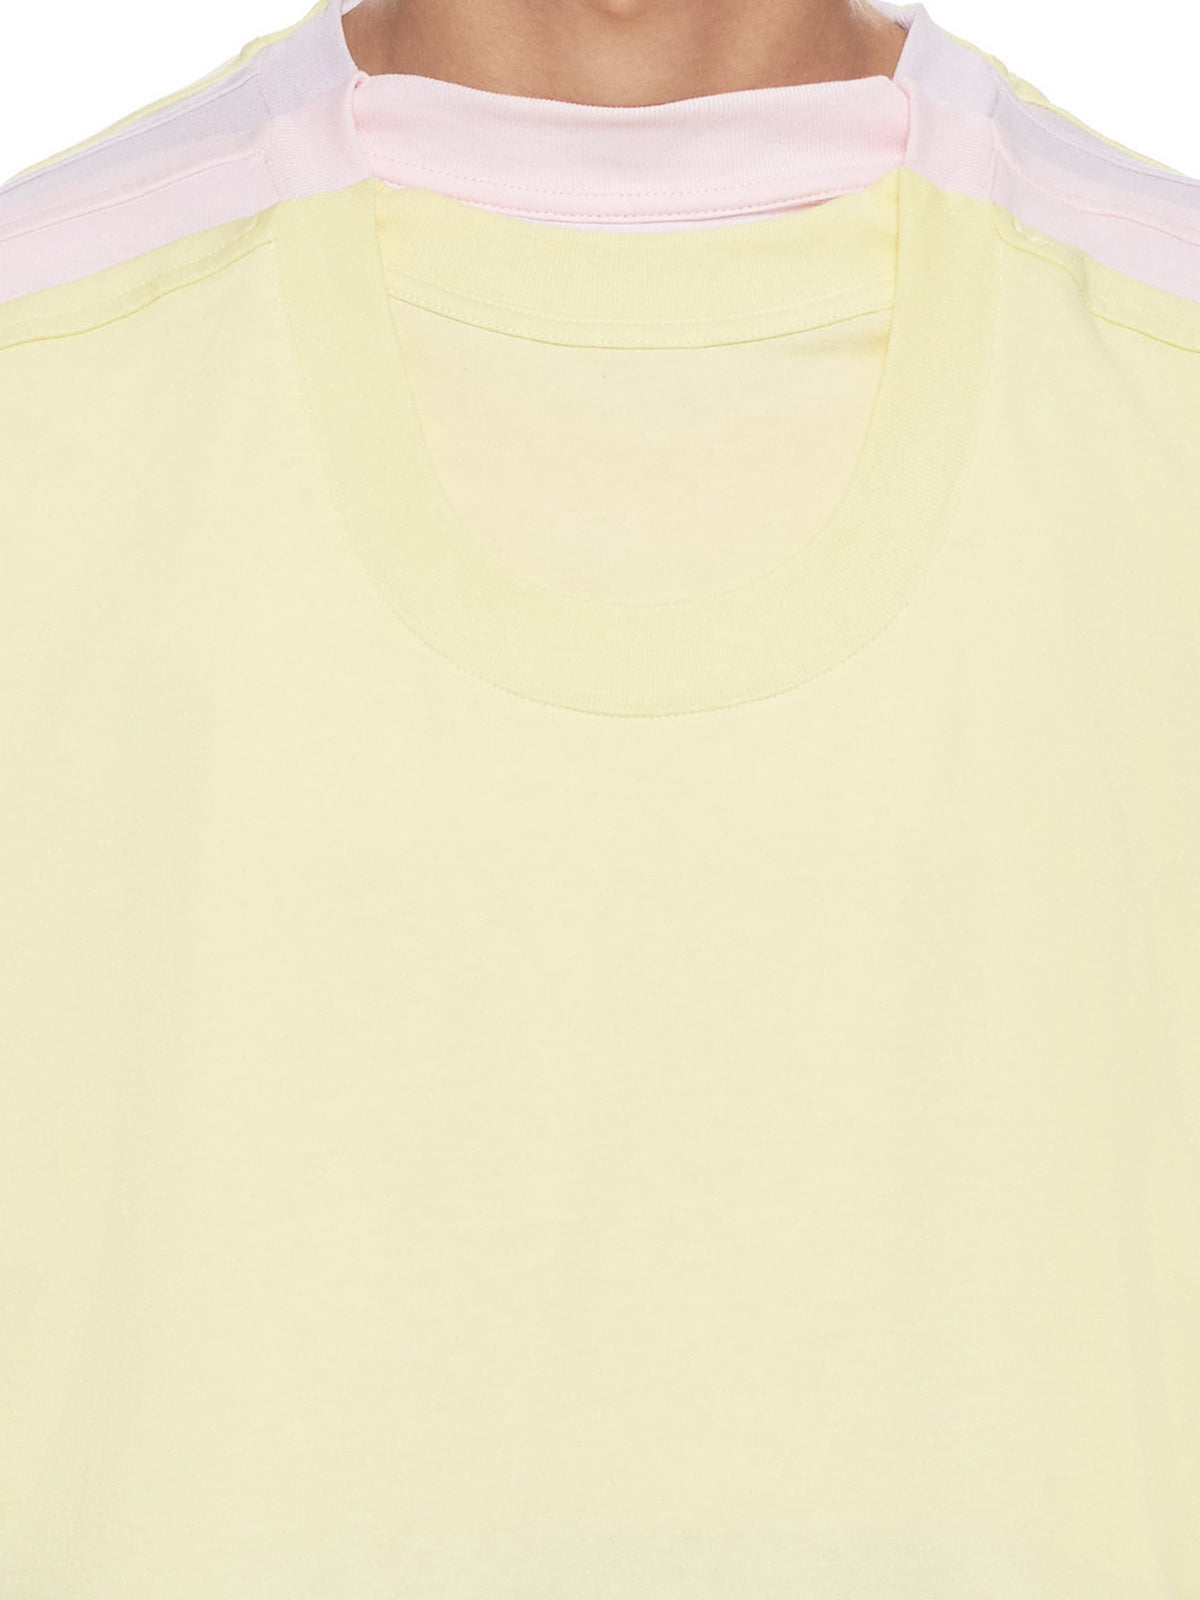 Four Layer T-Shirt (TS25-S16-JF31-LIGHT-YELLOW)